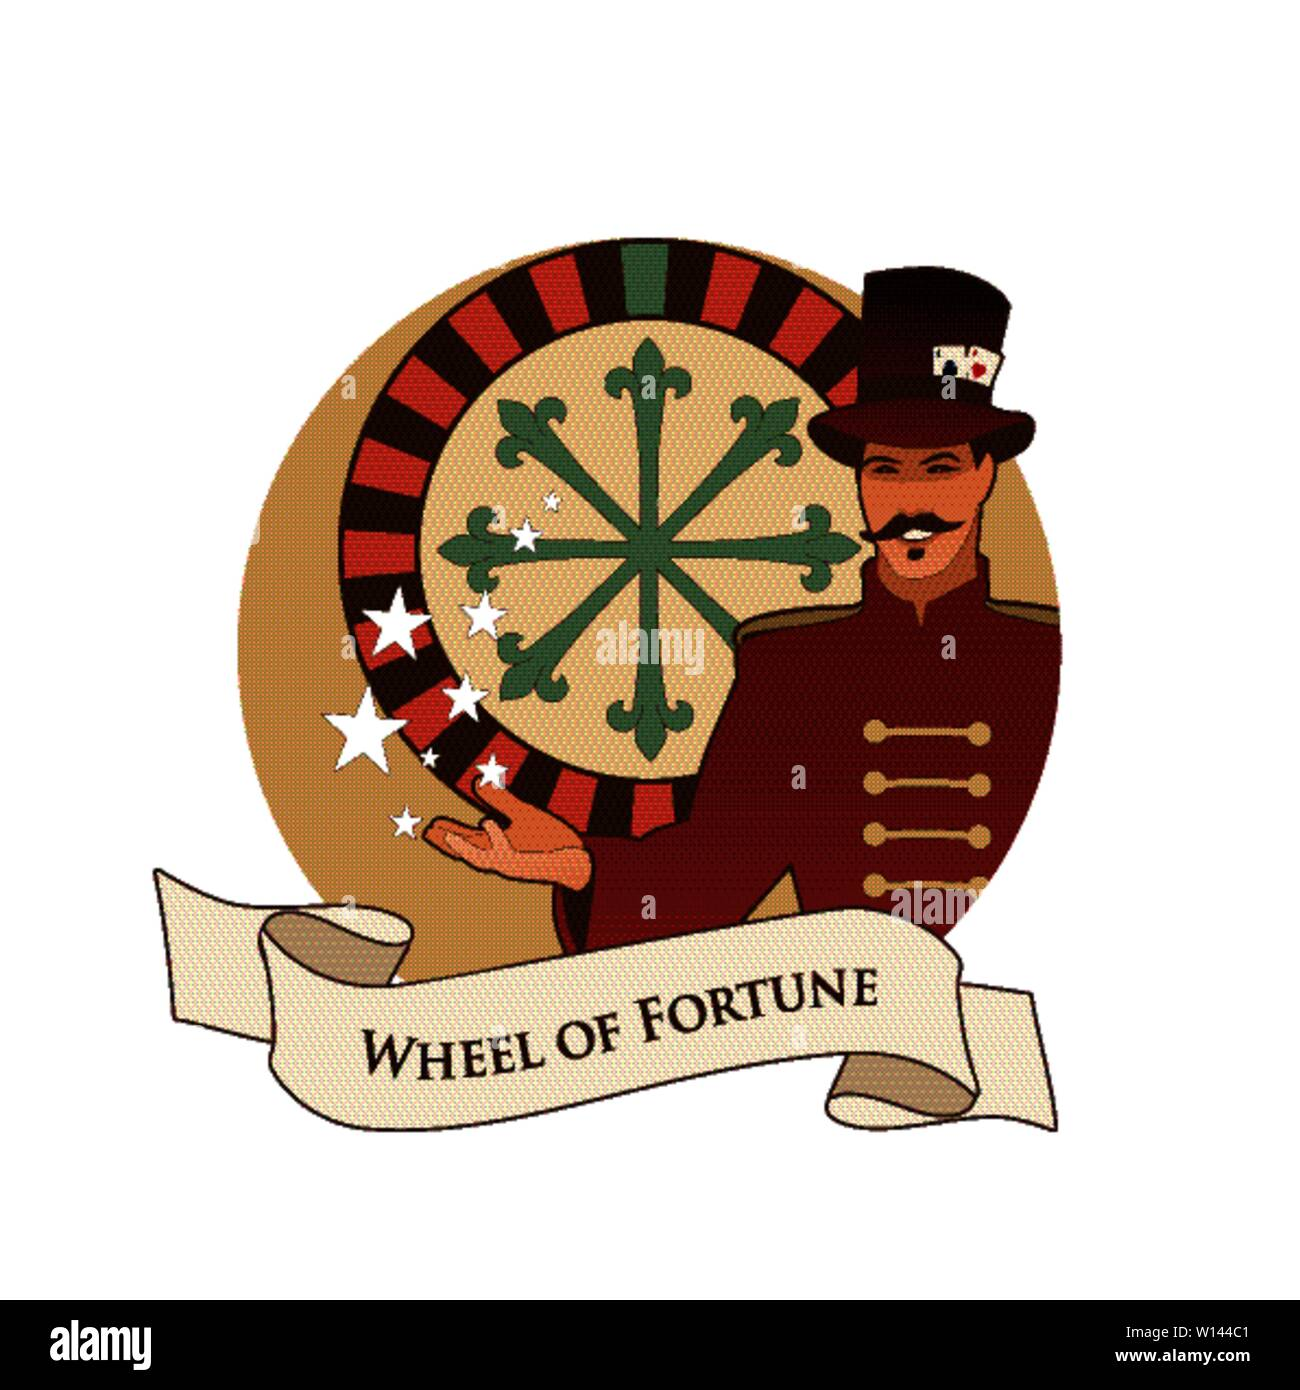 Major Arcana Emblem Tarot Card. The Wheel of Fortune. Master of ceremonies with mustache, wearing top hat adorned with playing cards, showing a casino - Stock Image